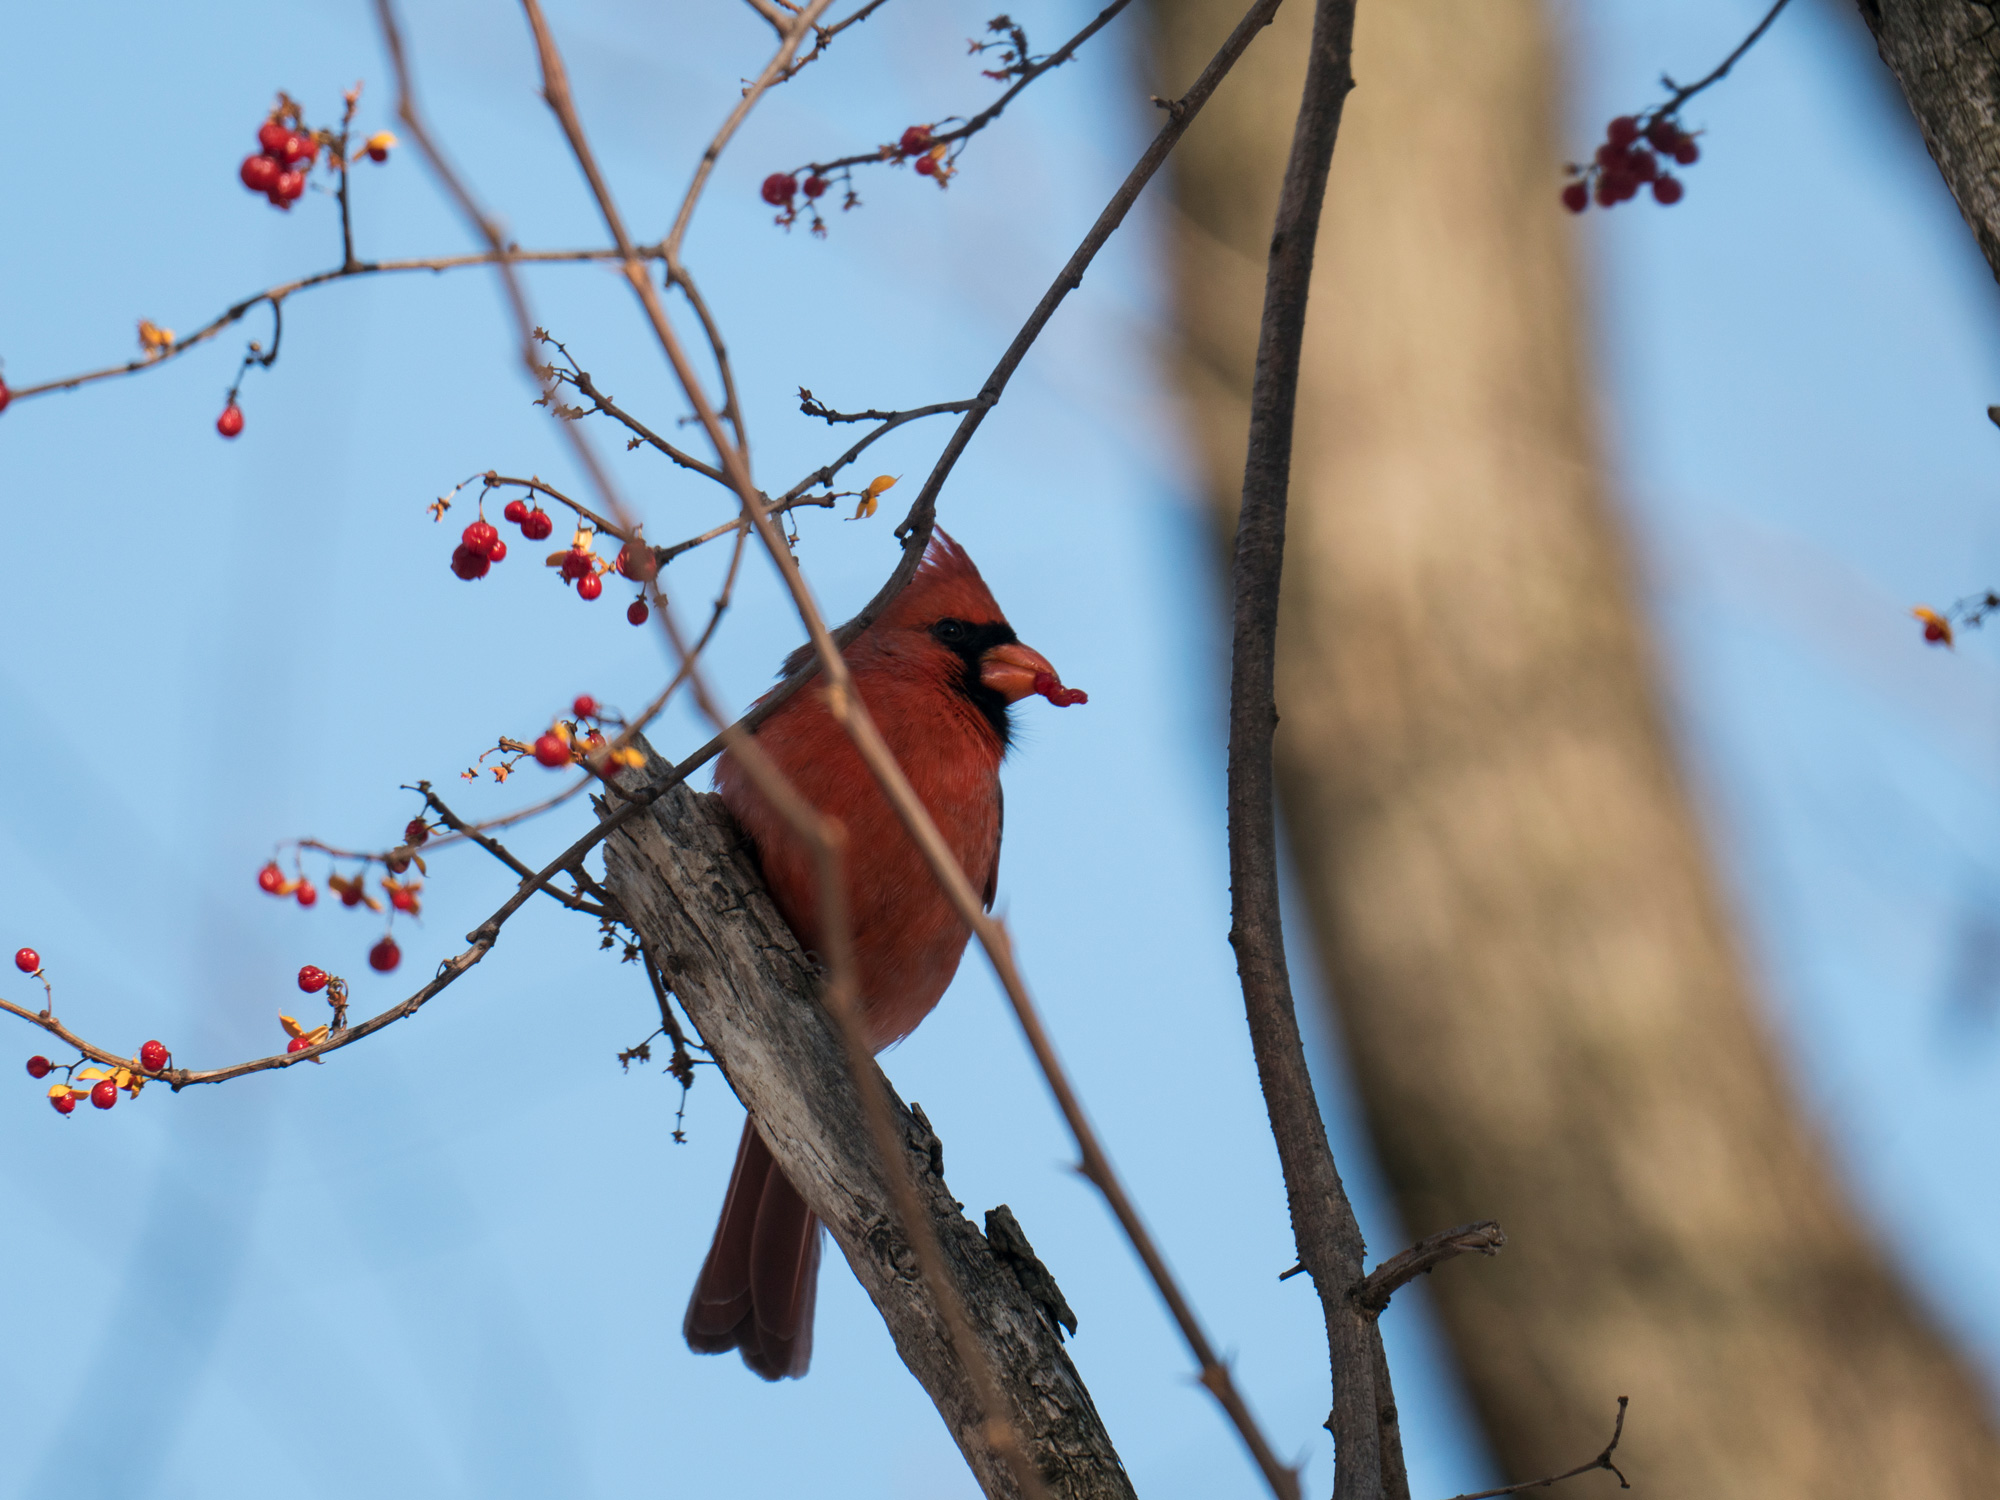 Birding in Brooklyn with the Panasonic G9 and Leica 200mm f/2 8 Lens